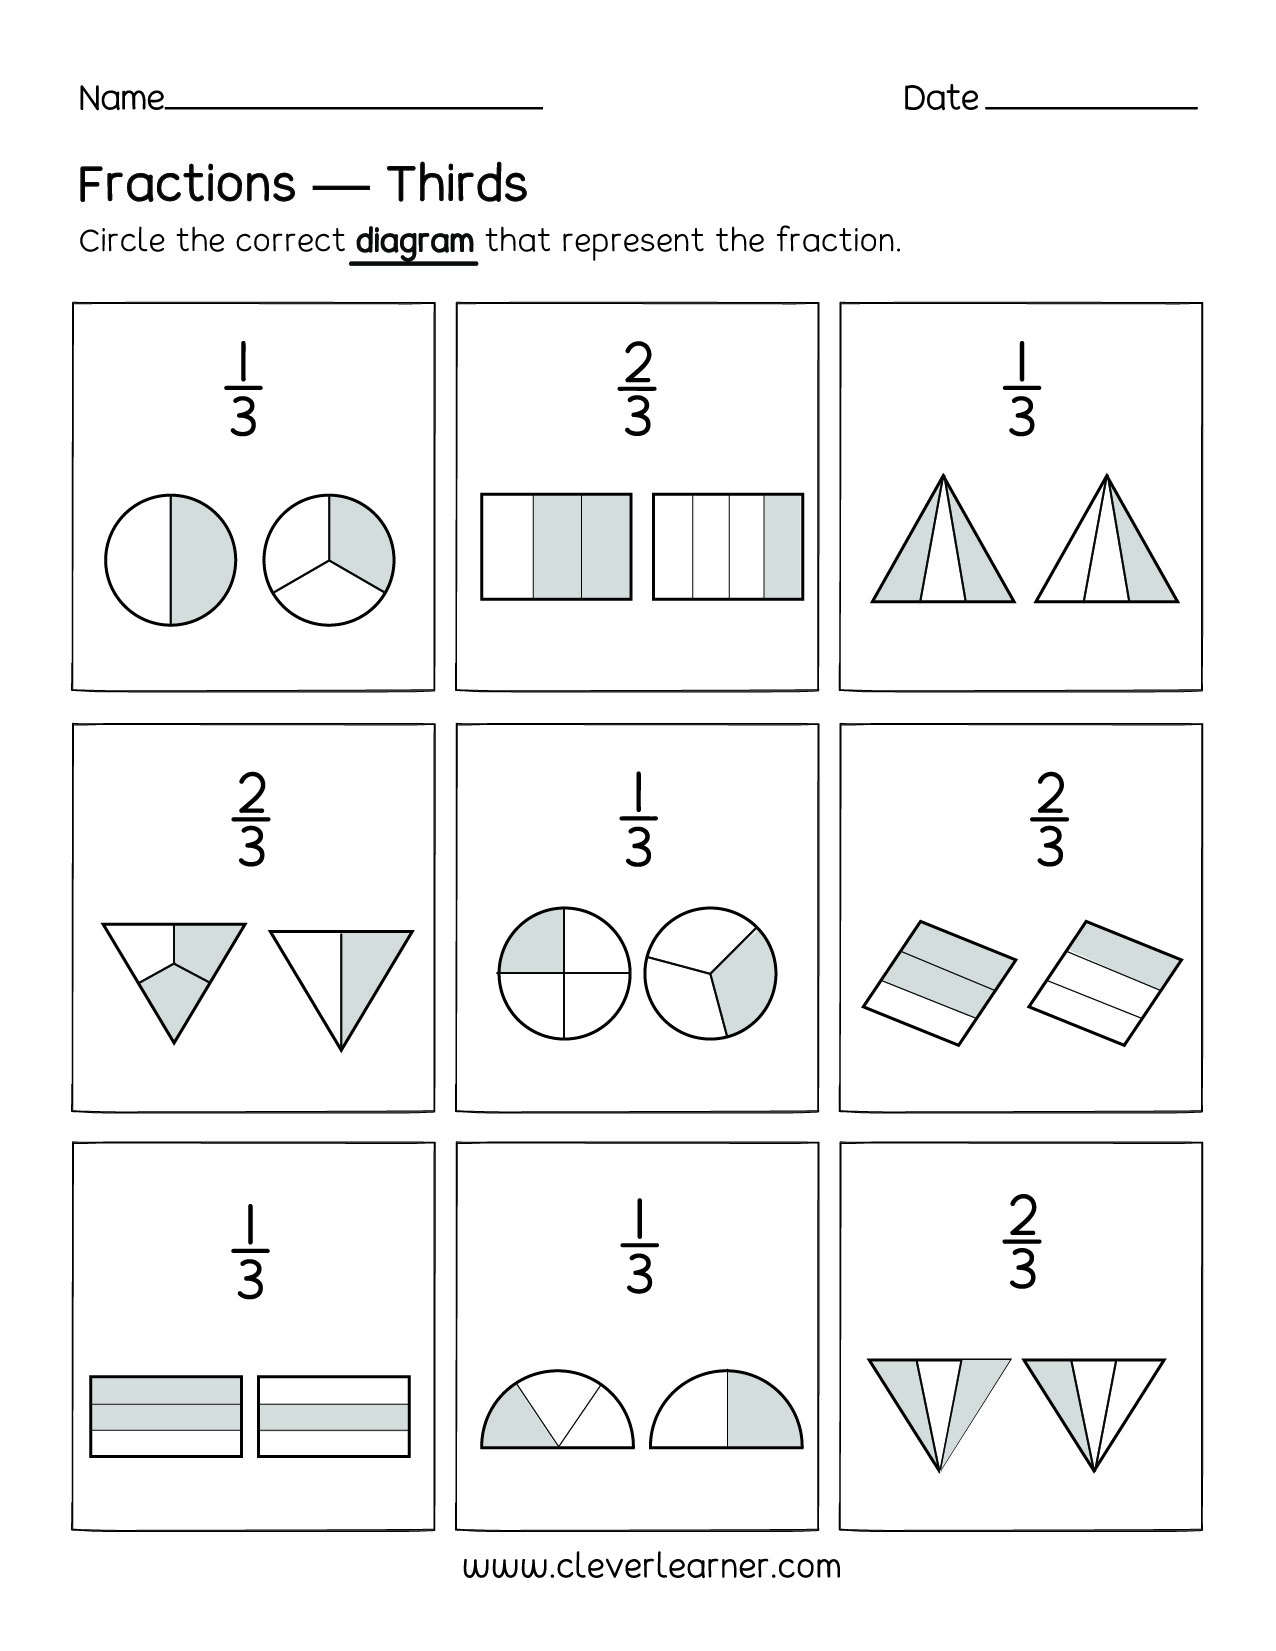 This is an image of Printable Fractions Games intended for game